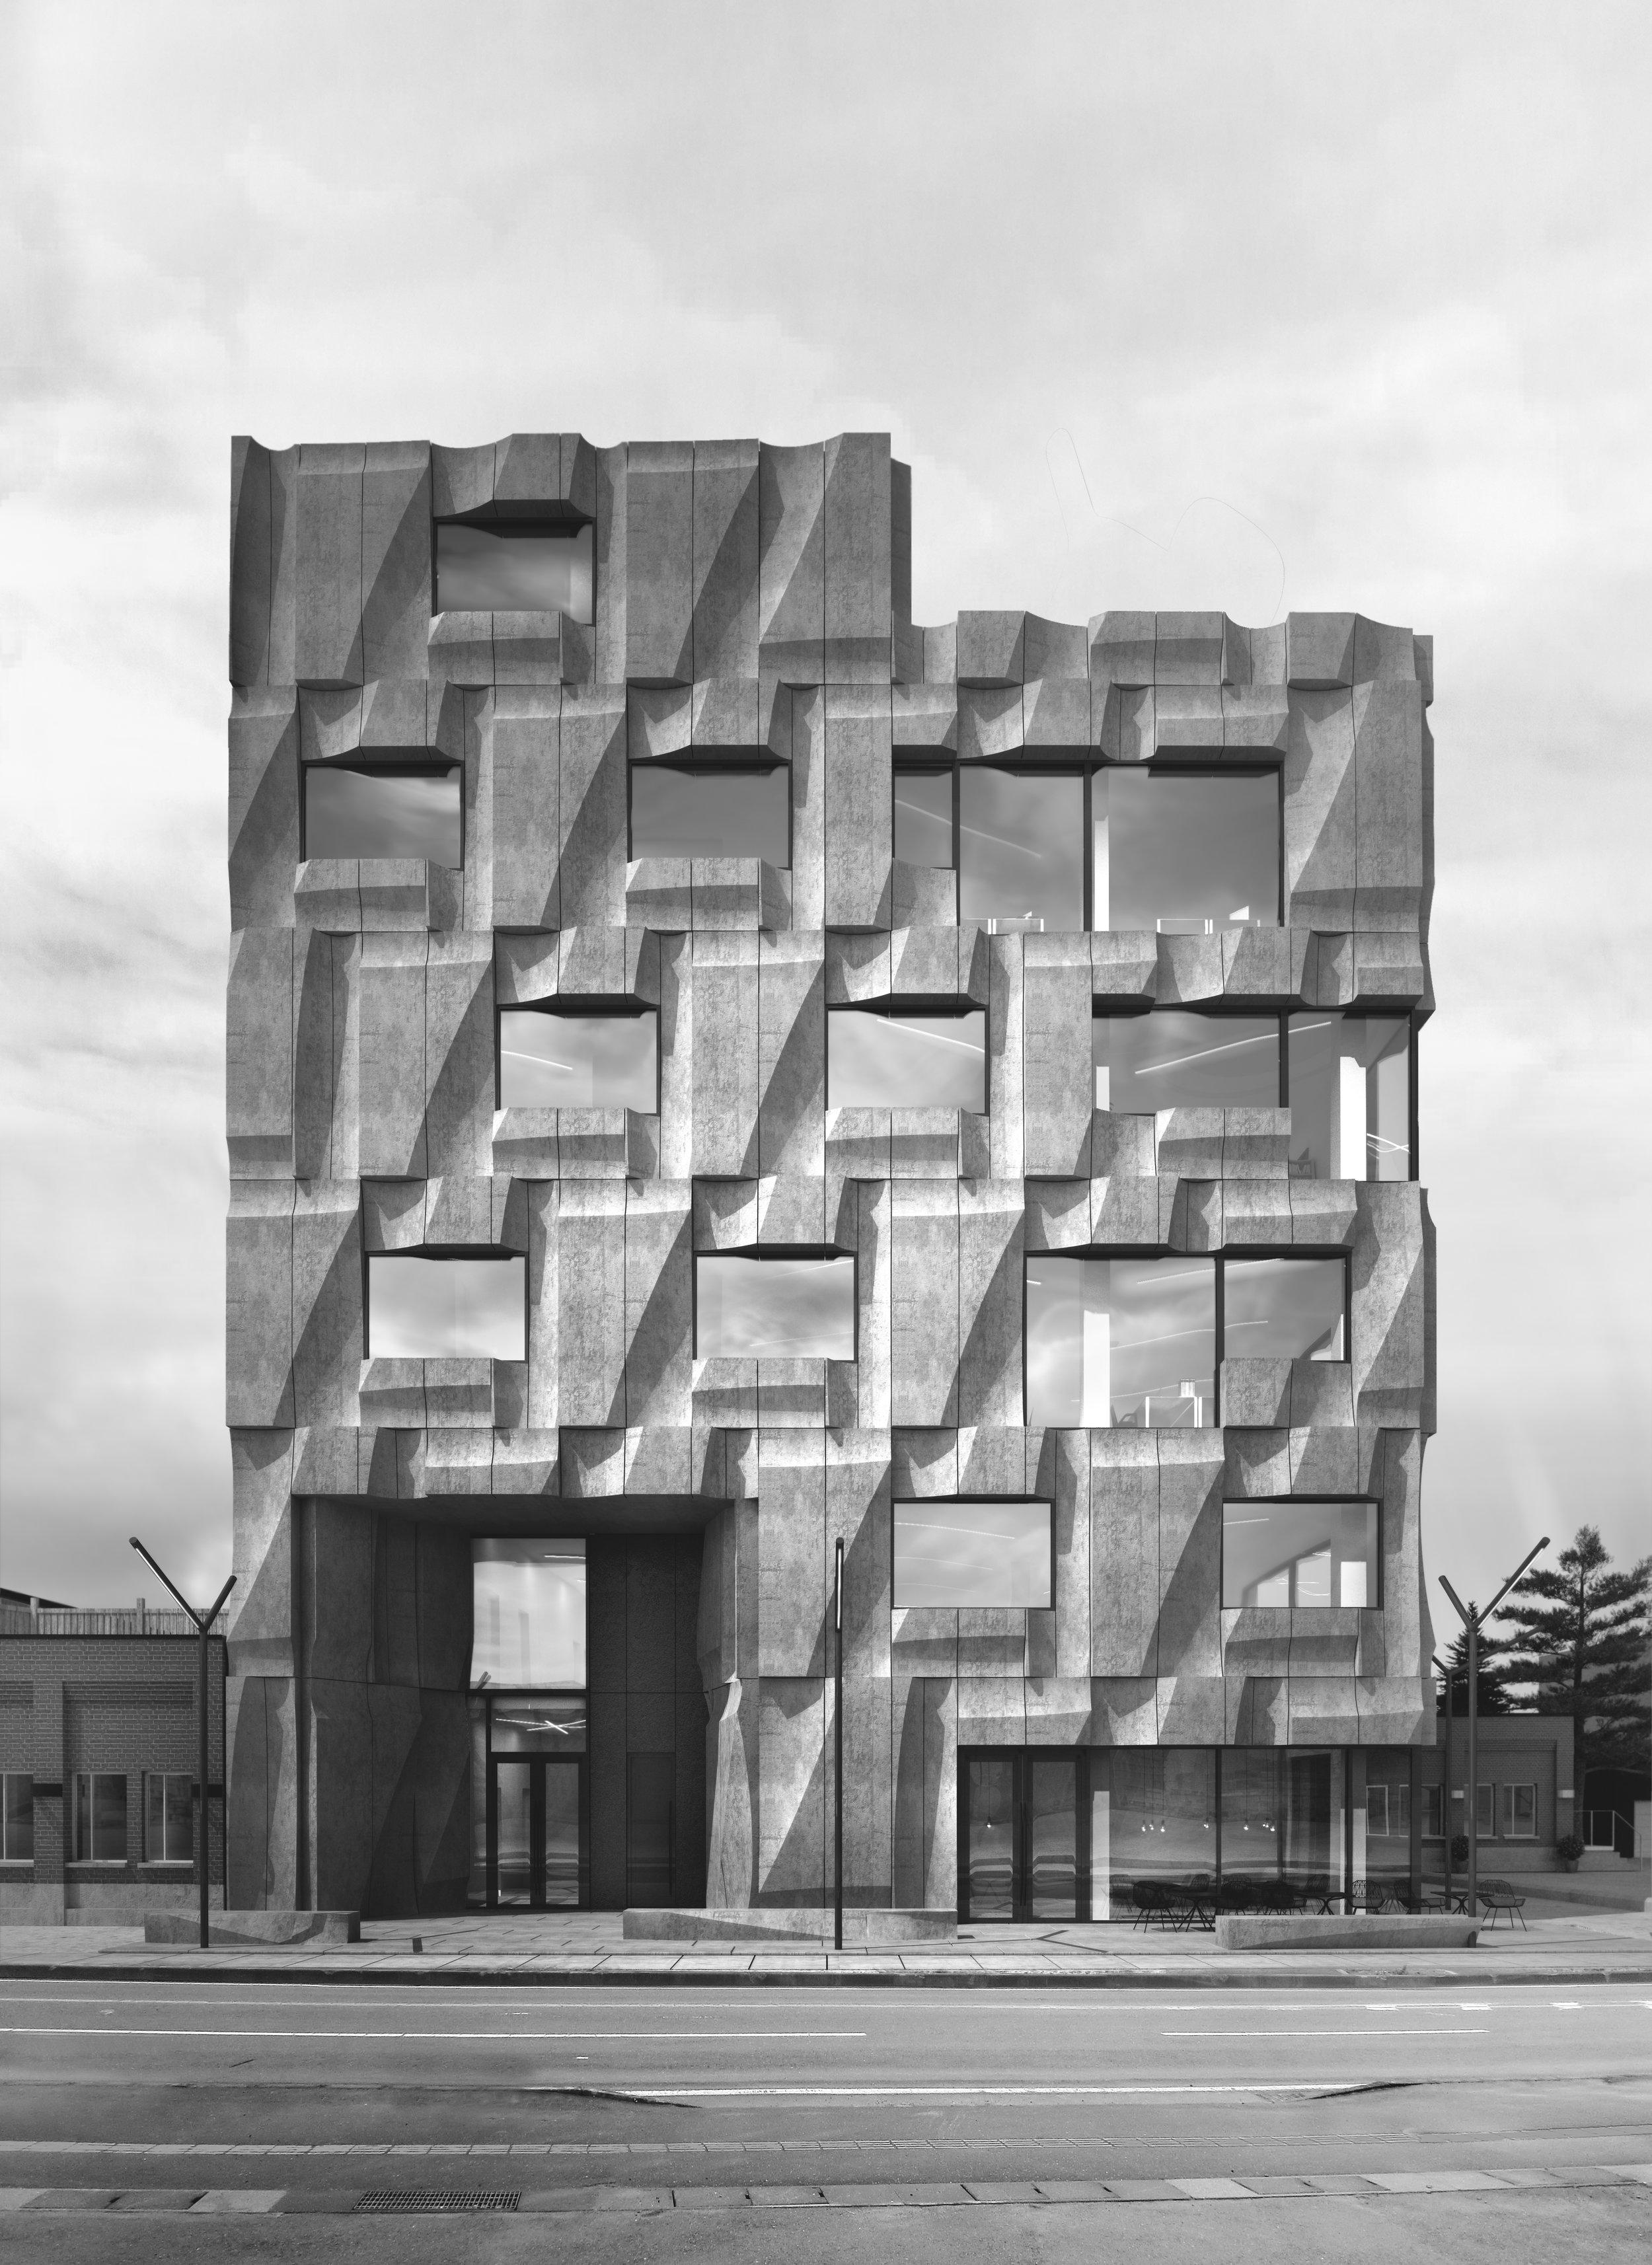 Elevational photo of front facade of mixed-use building with carved concrete panels and large sunken entry